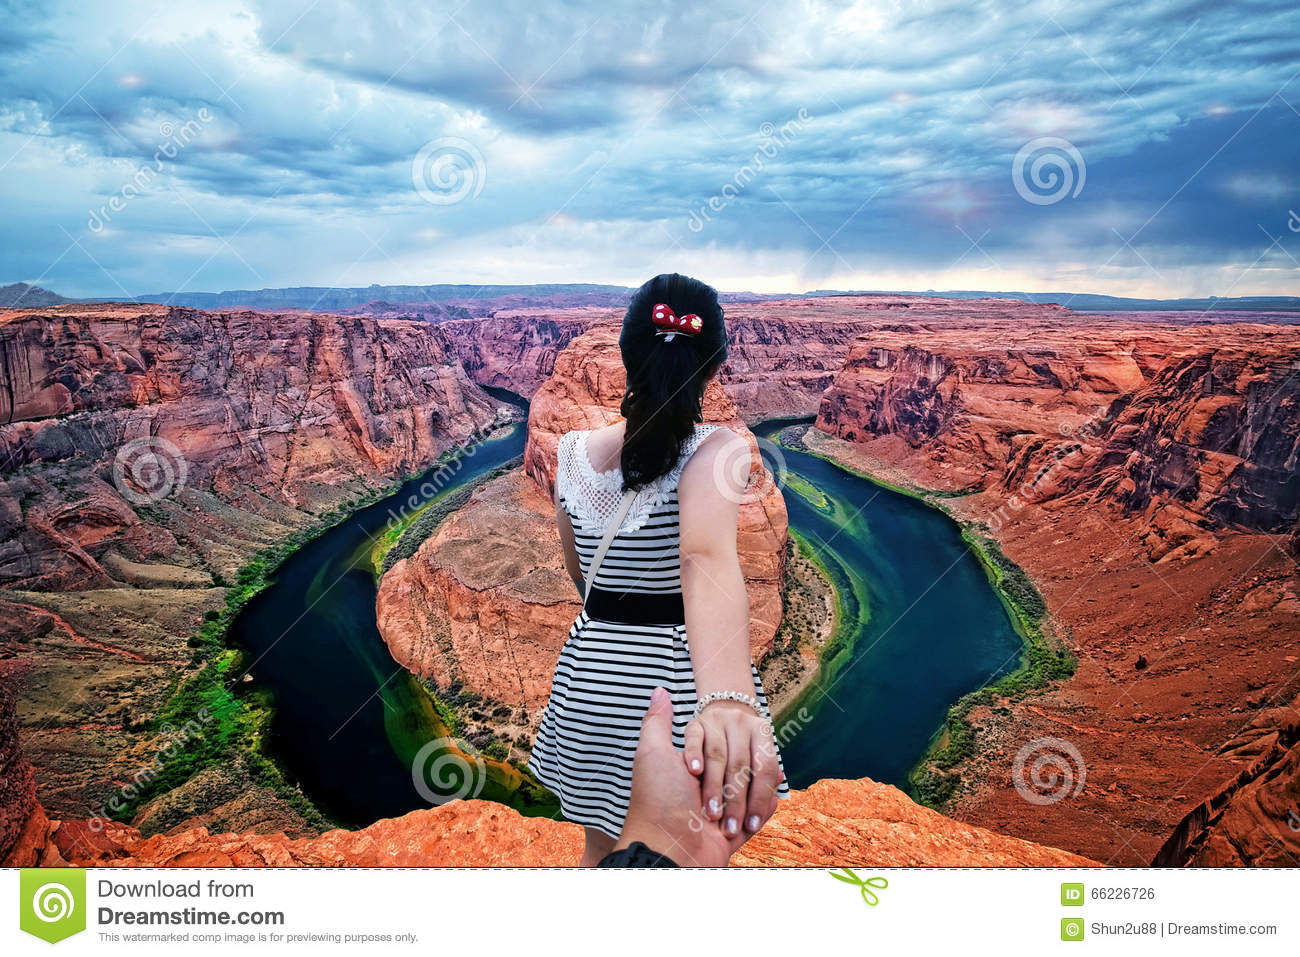 Horseshoe Bend Arizona, Follow Me To Stock Photo - Image: 66226726